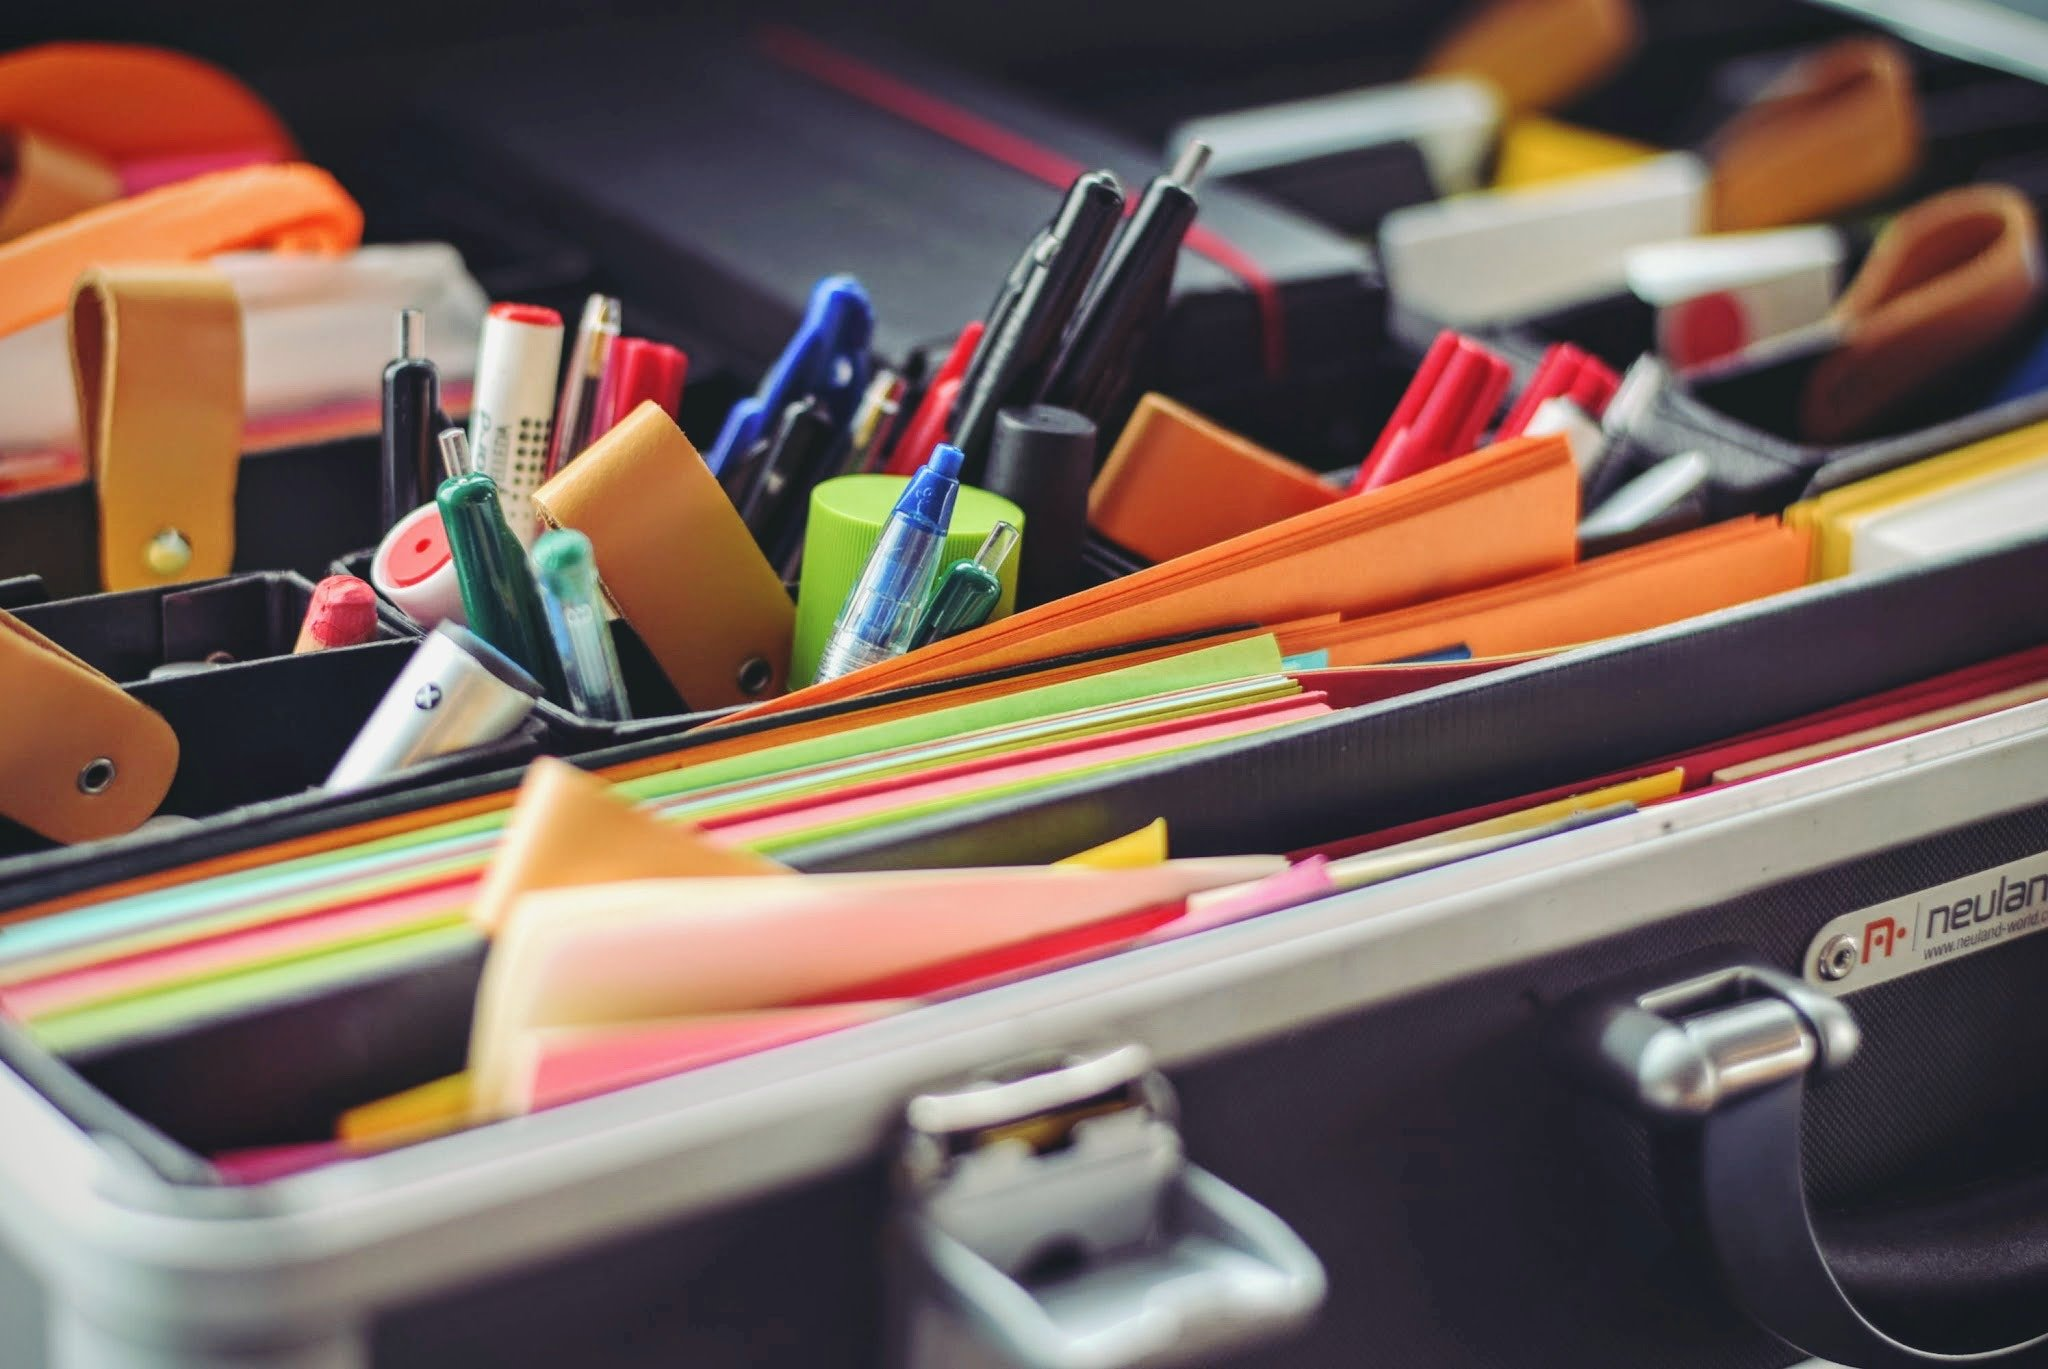 Get Organized - papers and pens